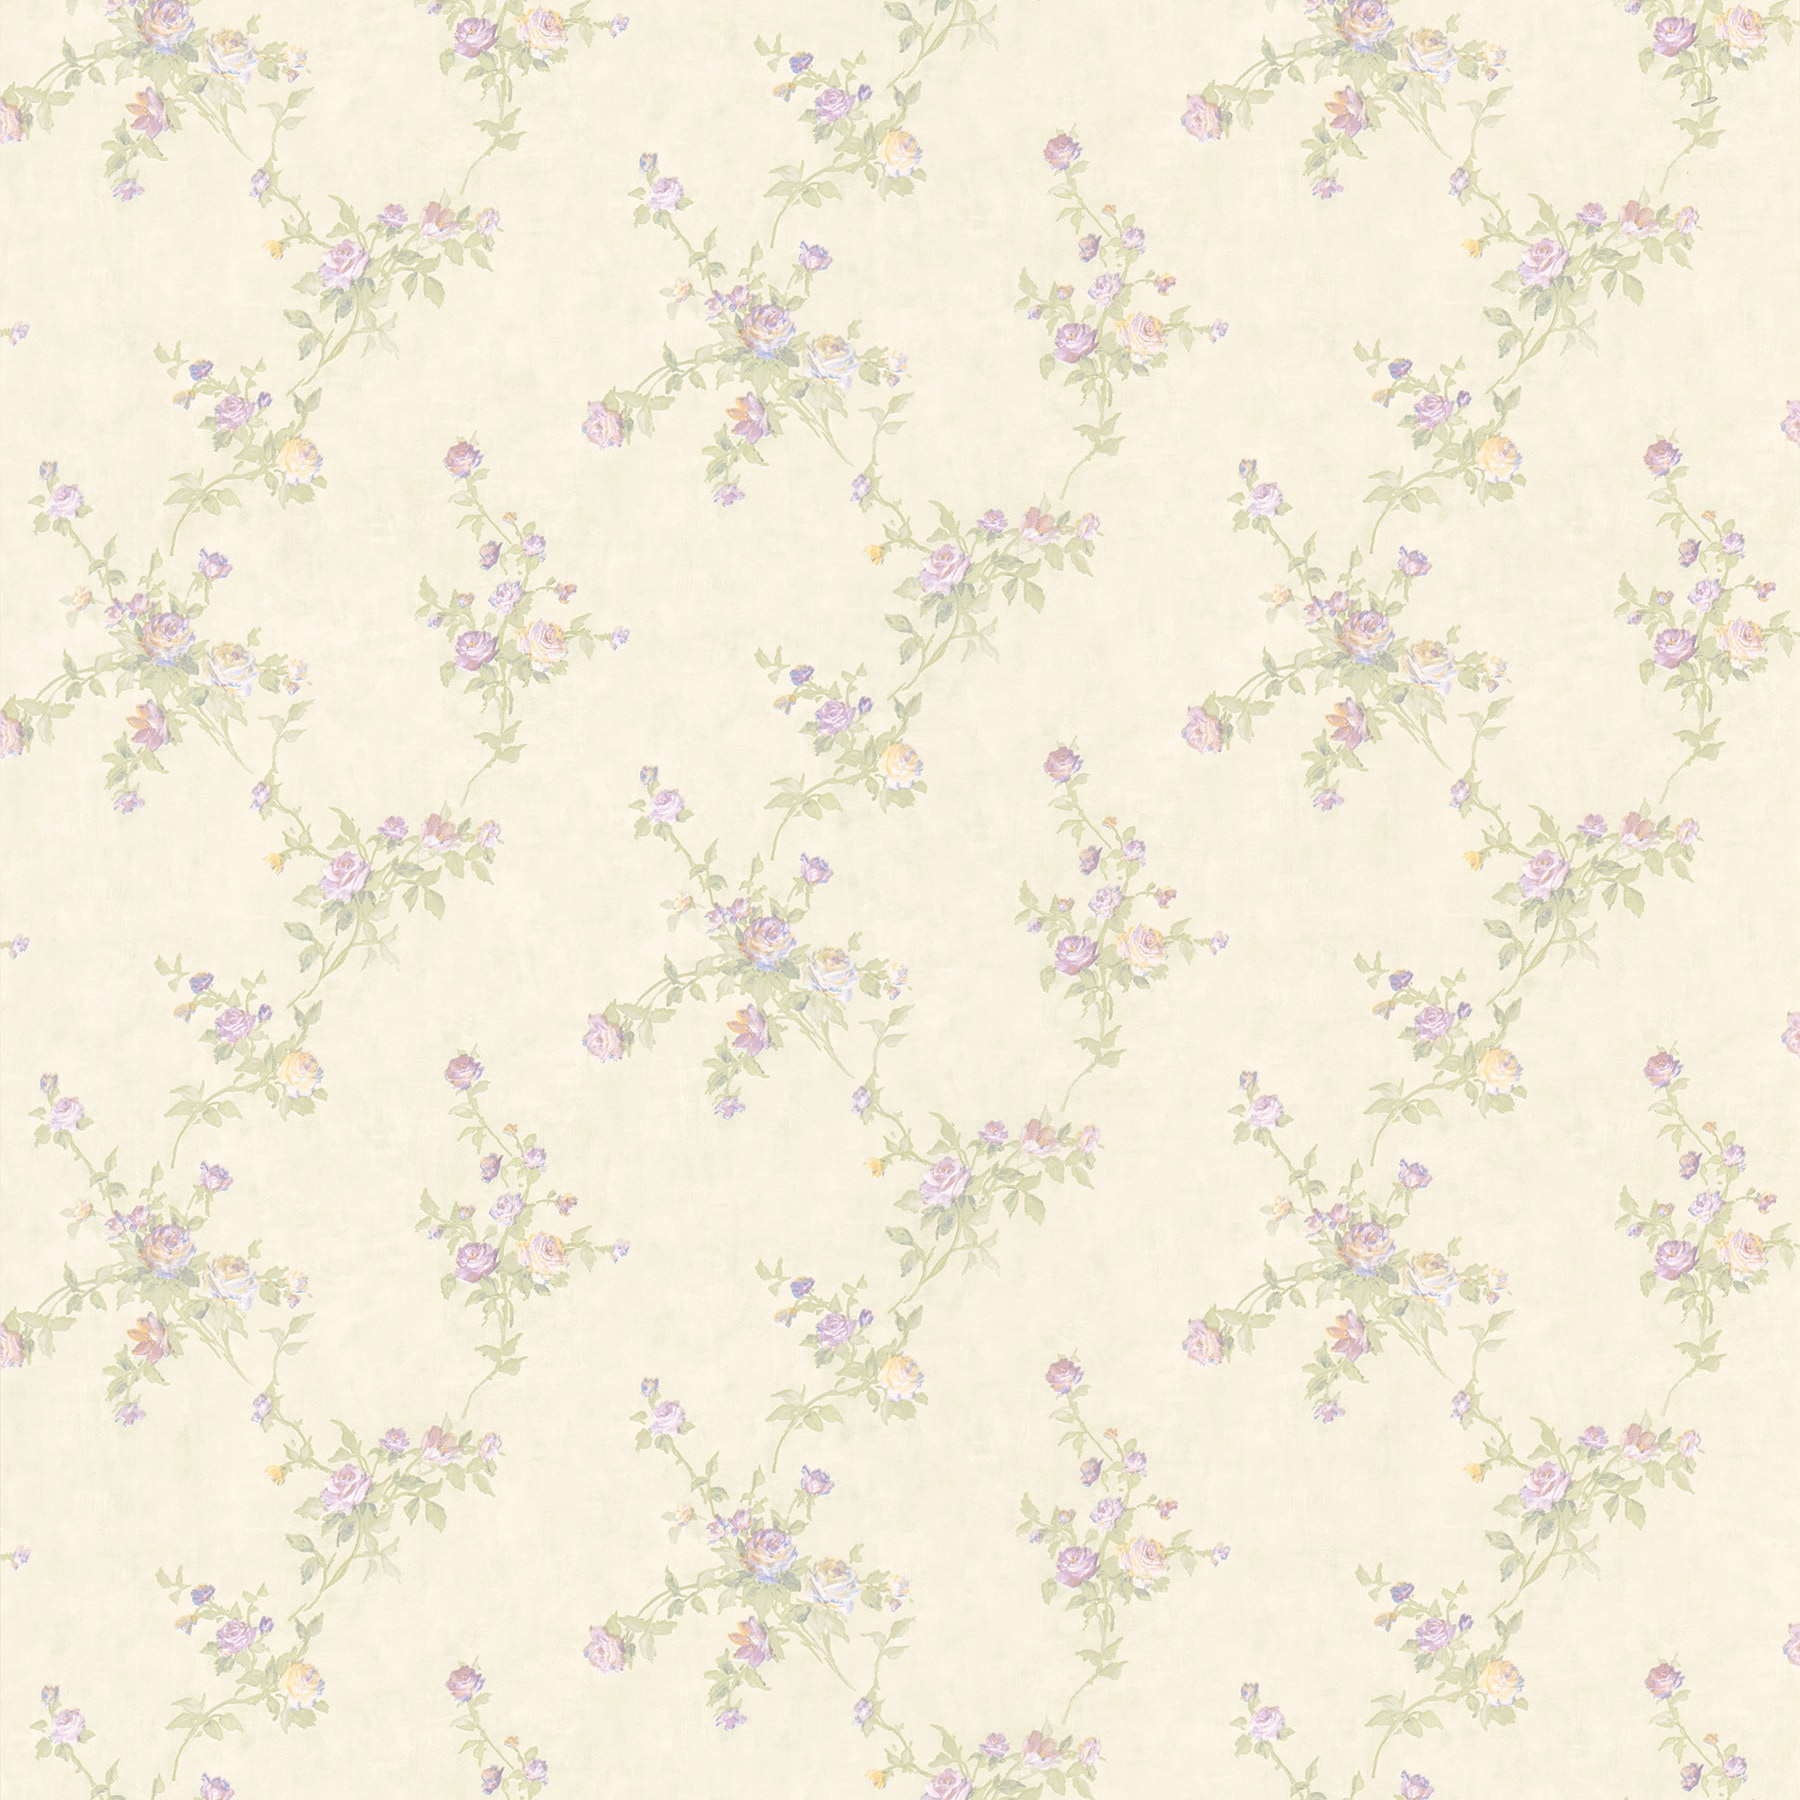 Shop Lavender Small Floral Print Wallpaper Overstock 8133726